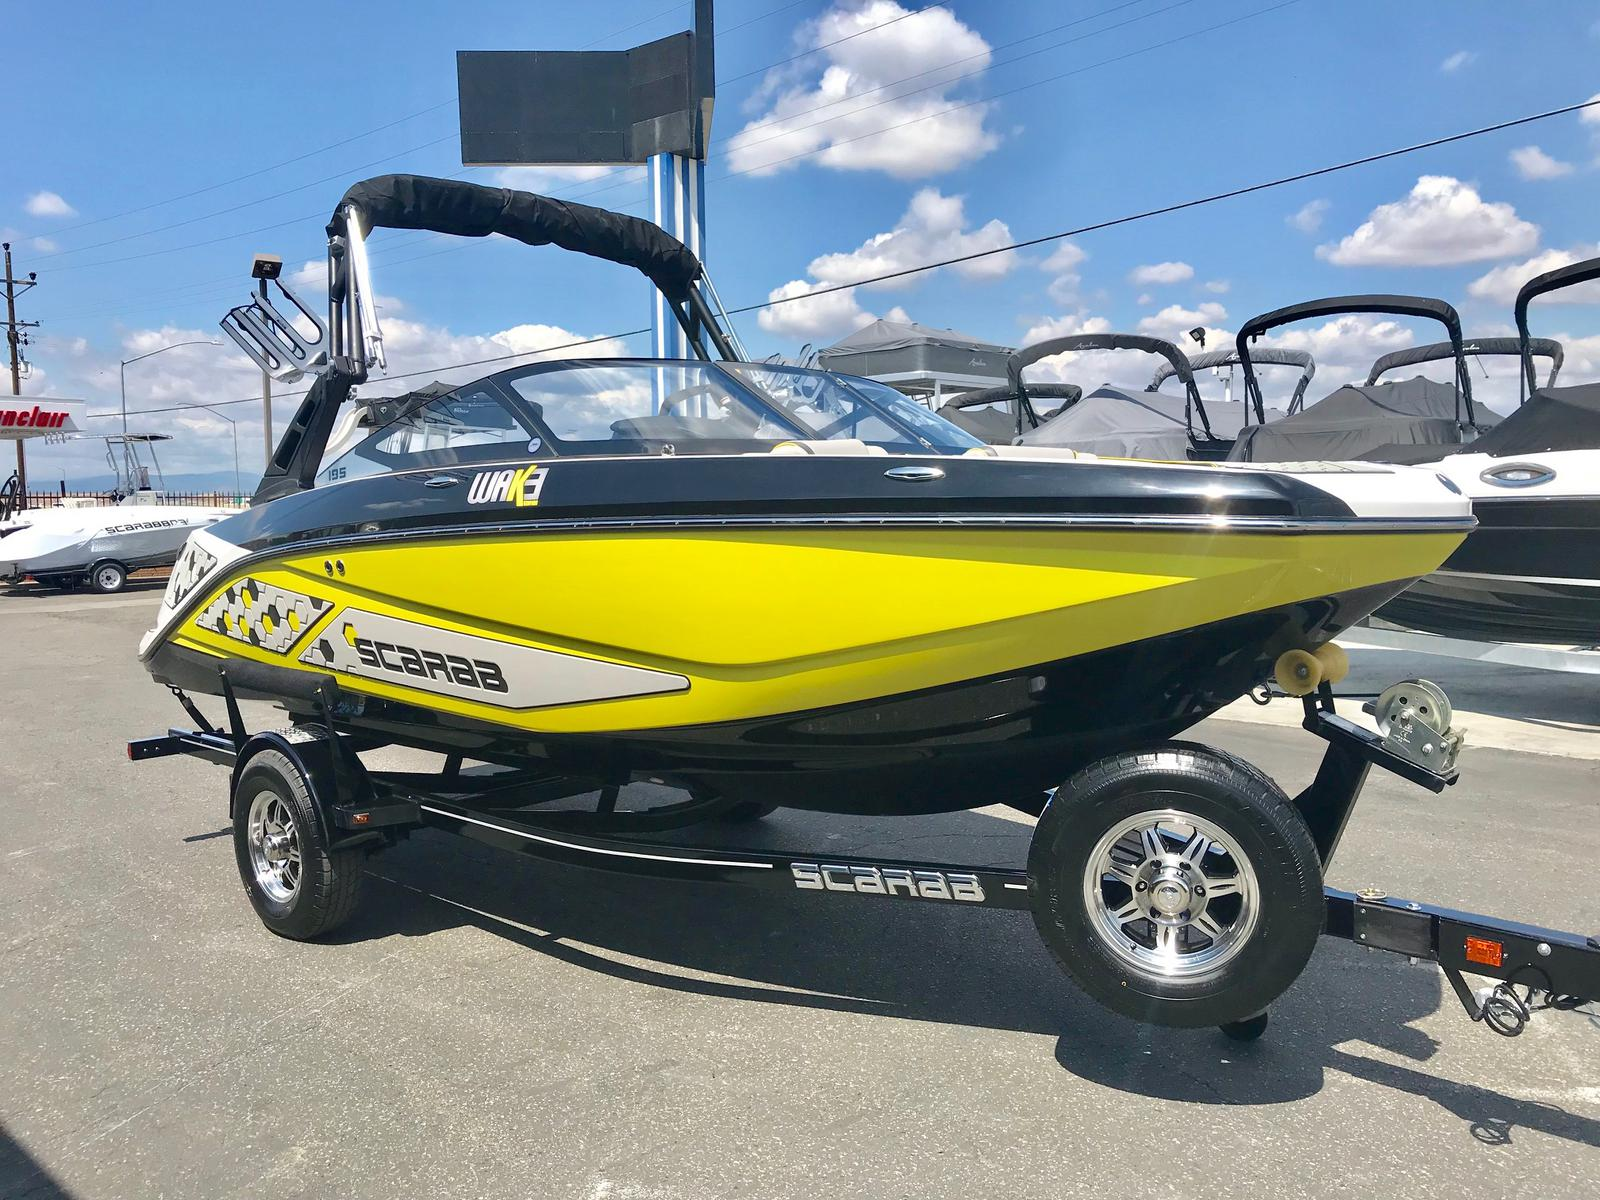 2019 Scarab 195 ID w/ 250HP Supercharged ROTAX Engine!